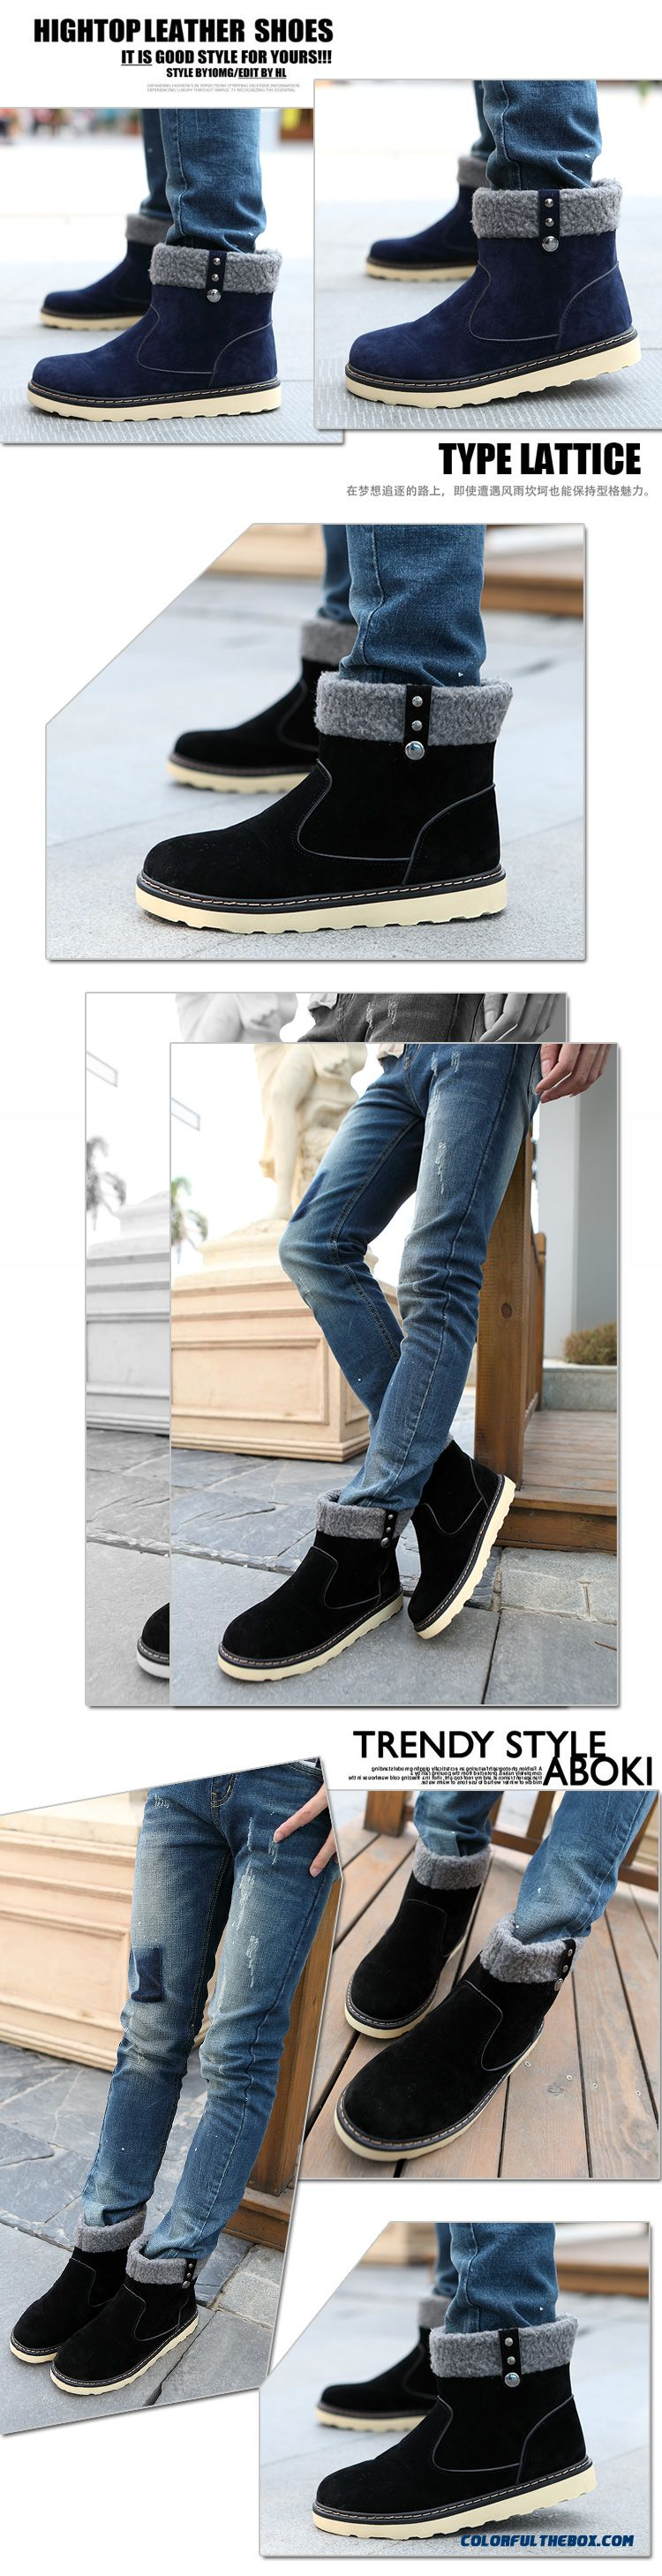 Special Offer Winter Warm Men Snow Boots Fashion Free Shipping - detail images